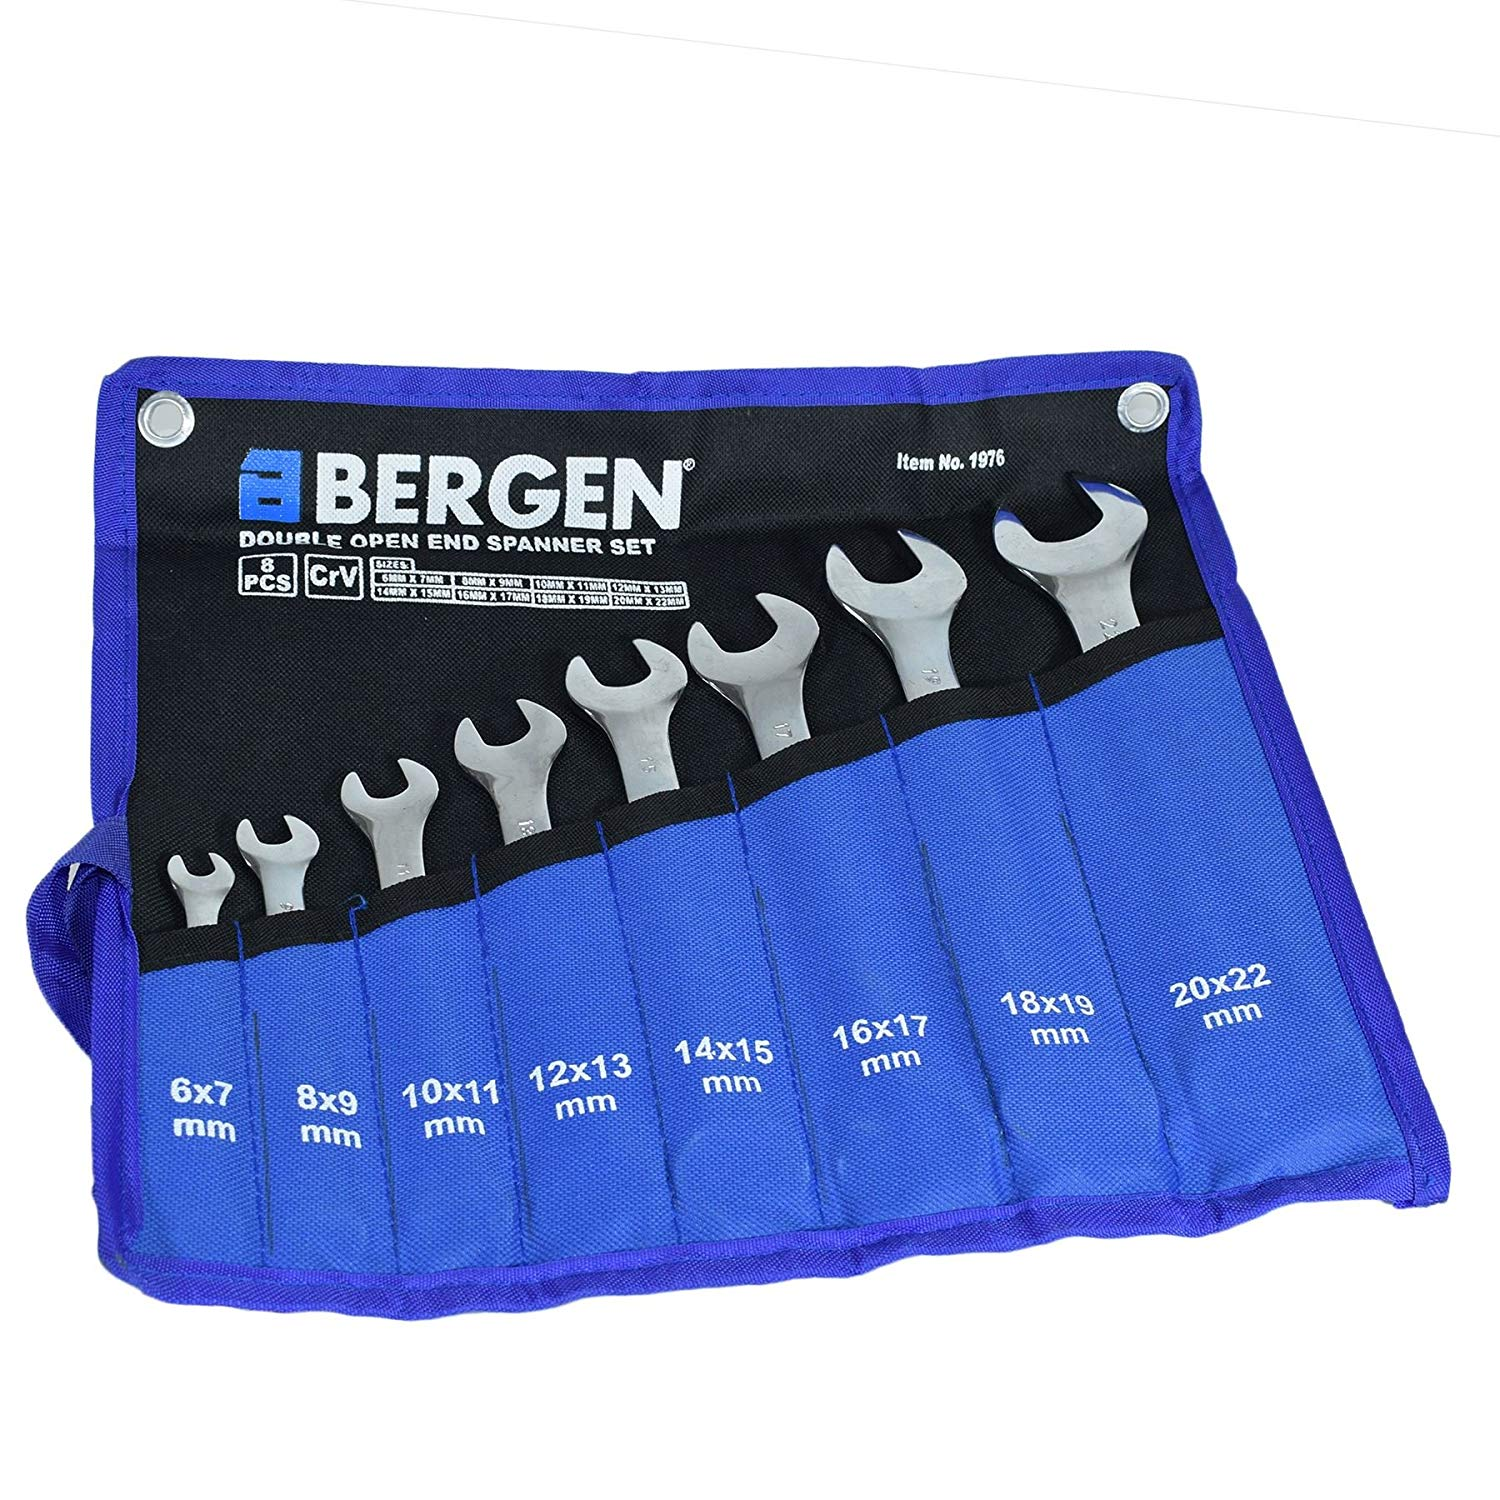 Double Ended Open Metric Spanner Set 6mm - 22mm 8pc 16 Sizes Bergen